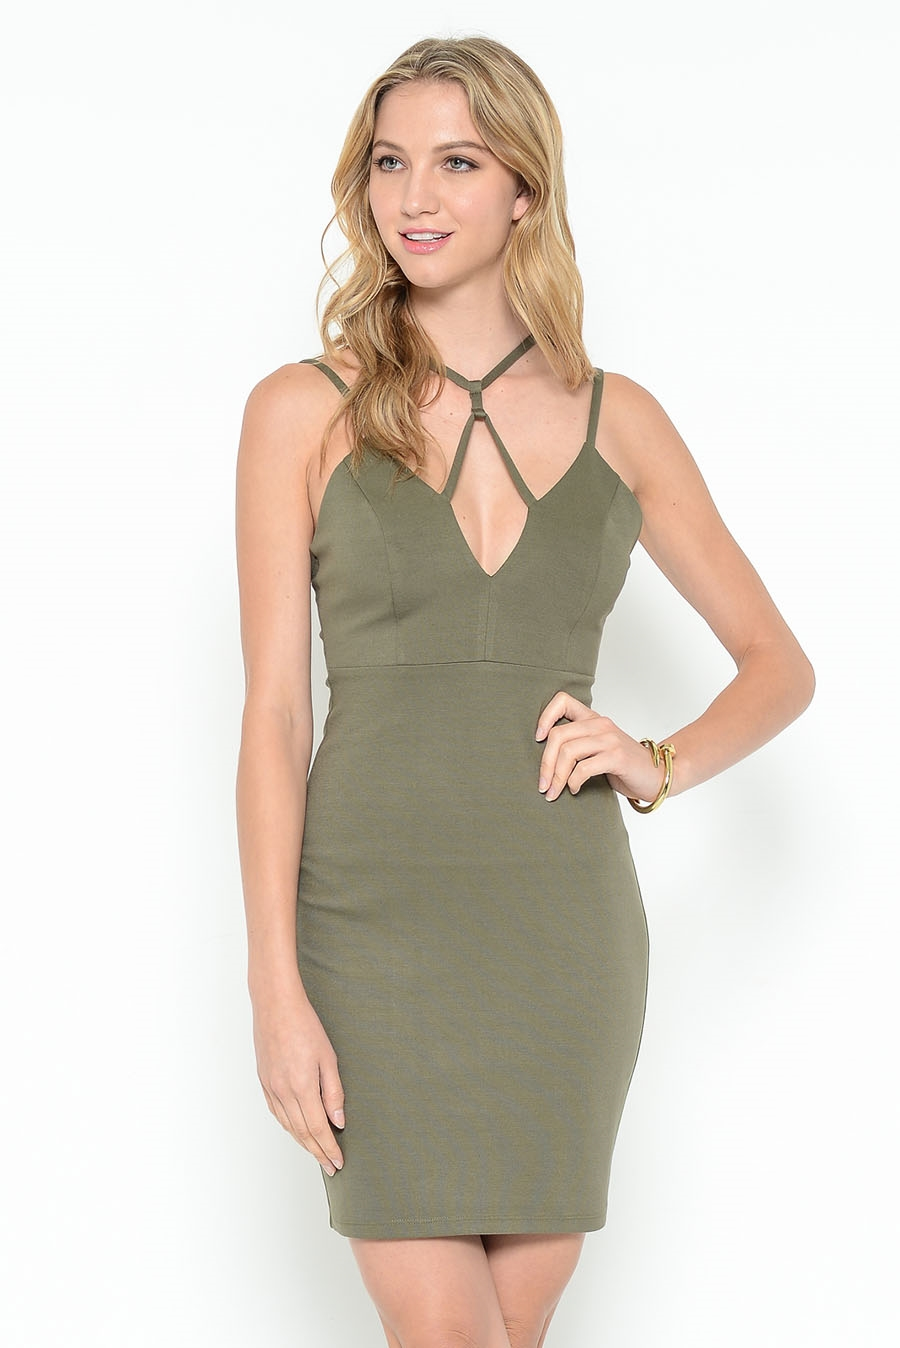 STRAPPY NECK MIDI DRESS - orangeshine.com